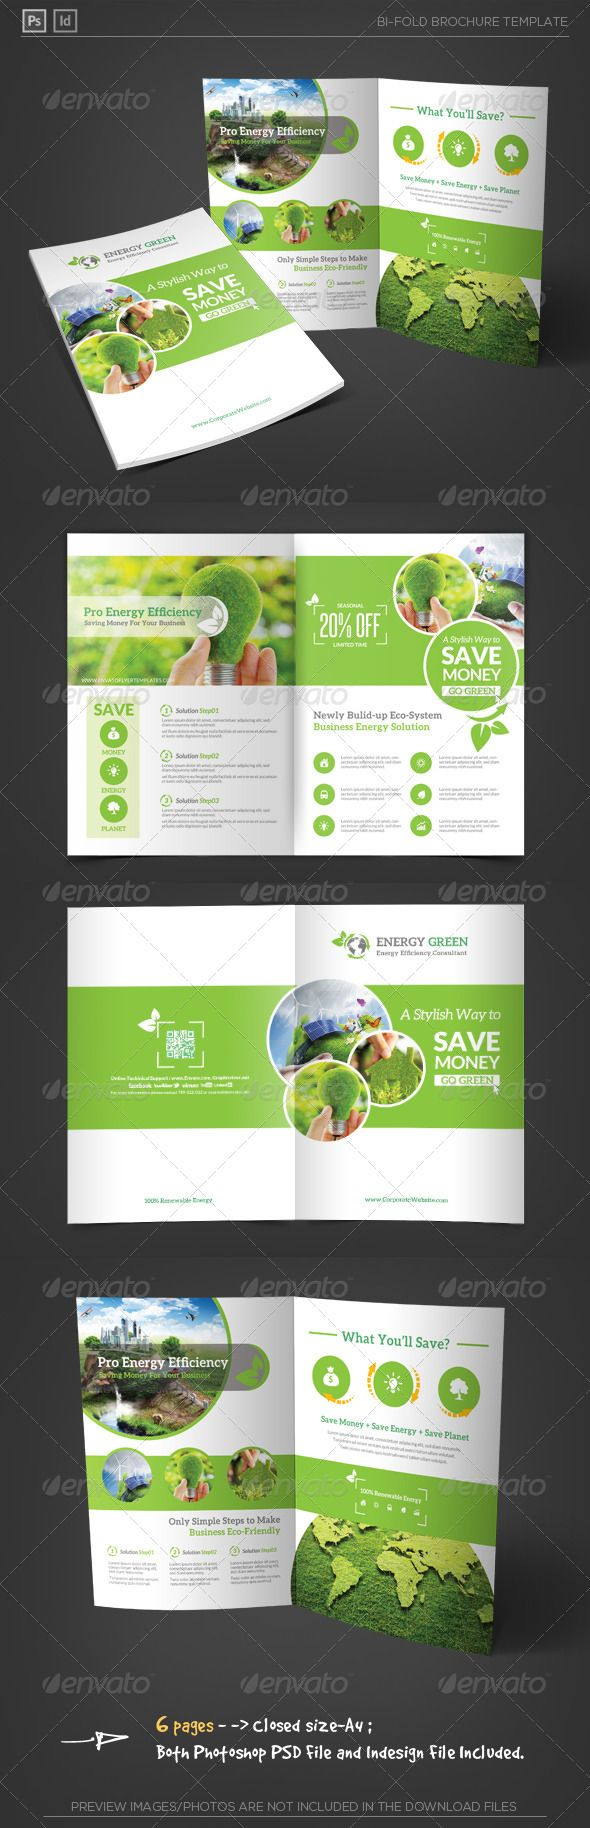 Energy Saving Corporate Bifold Brochure